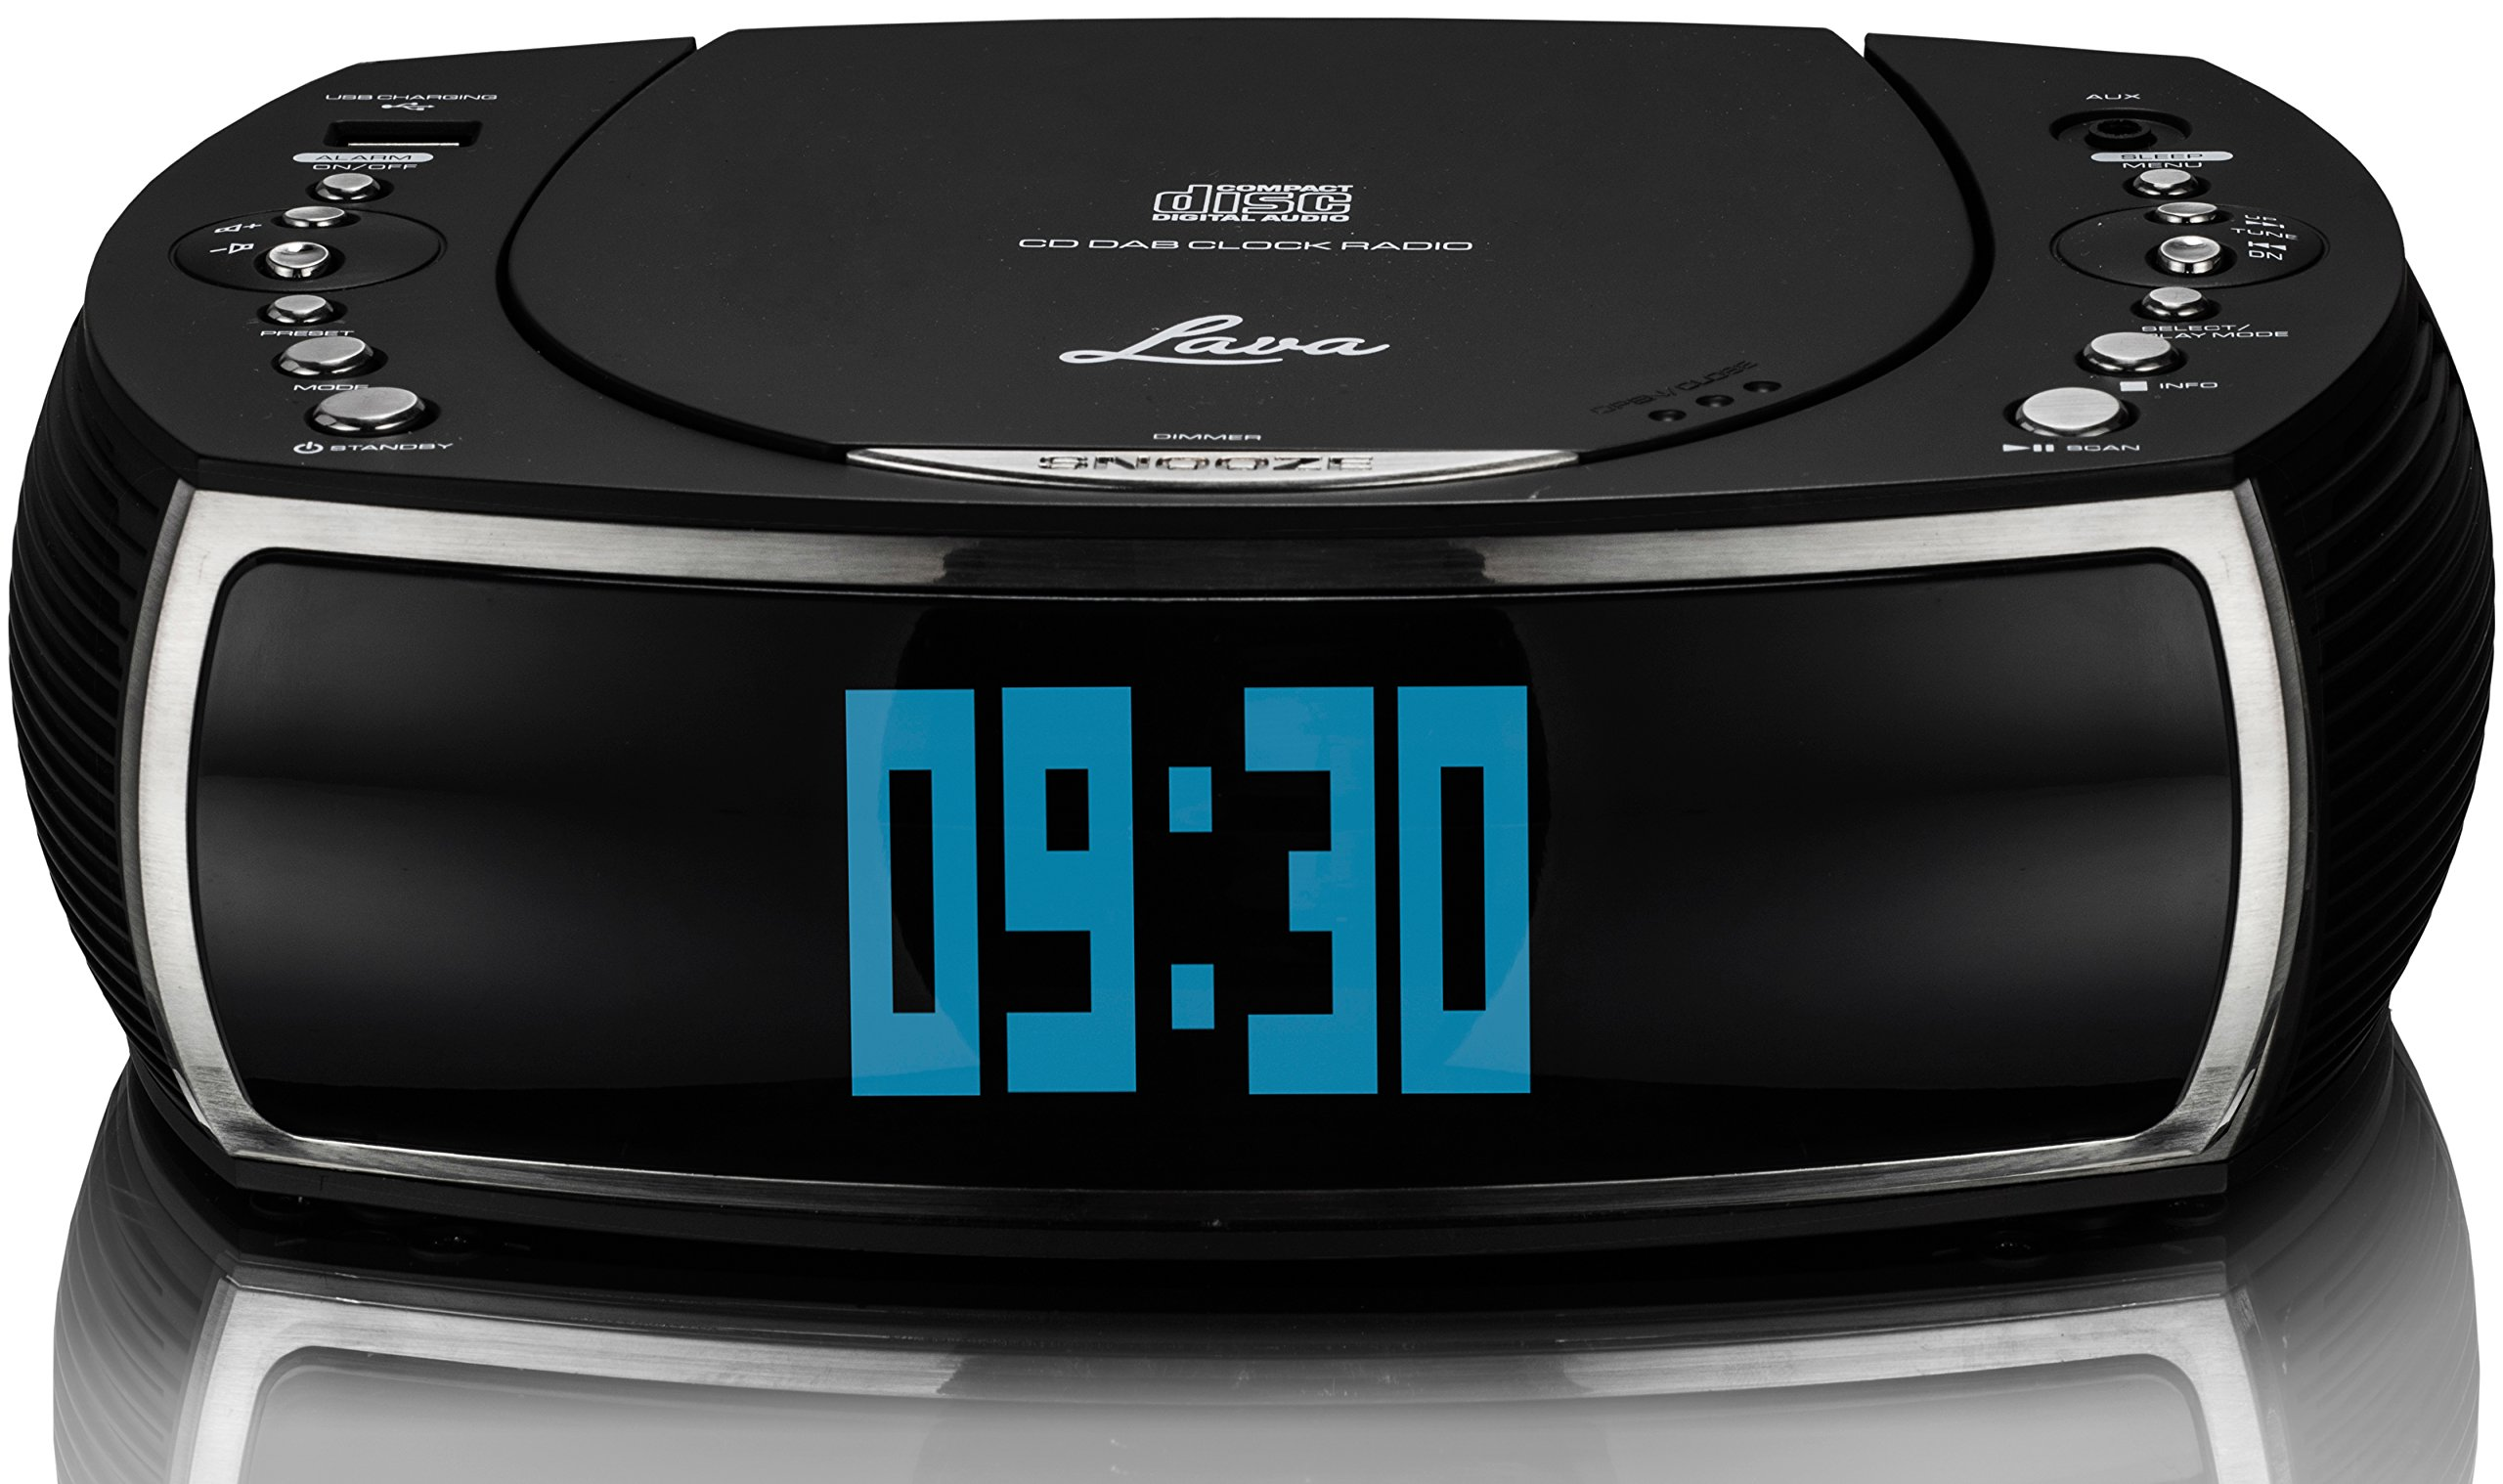 lava bedsidecd alarm clock dab dab digital fm radio. Black Bedroom Furniture Sets. Home Design Ideas